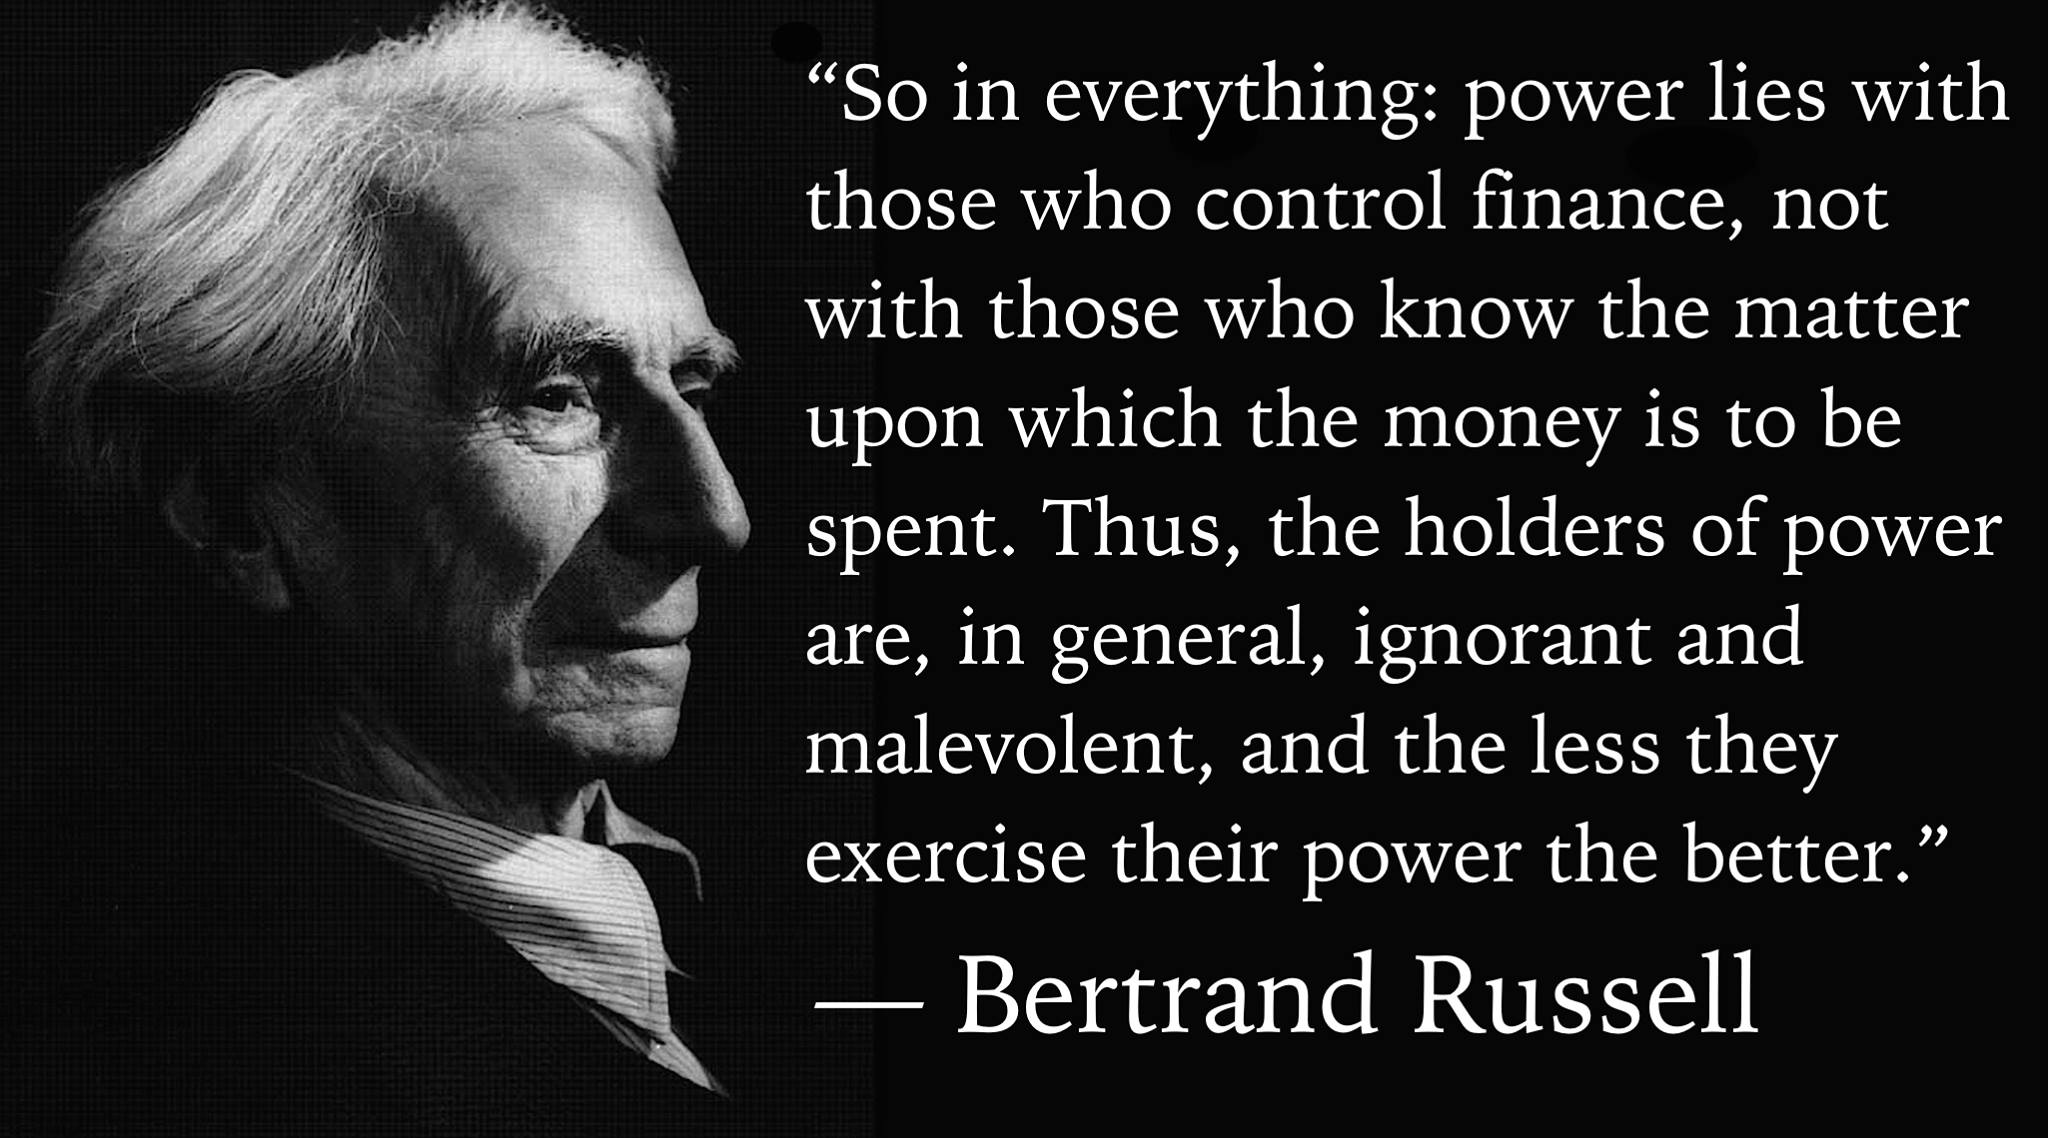 """So in everything: power lies with those who control finance, not with those who know the matter upon which the money is to be spent. Thus, the holders of power are, in general, ignorant and malevolent, and the less they exercise their power the better."" — Bertrand Russell, Sceptical Essays (1928)"